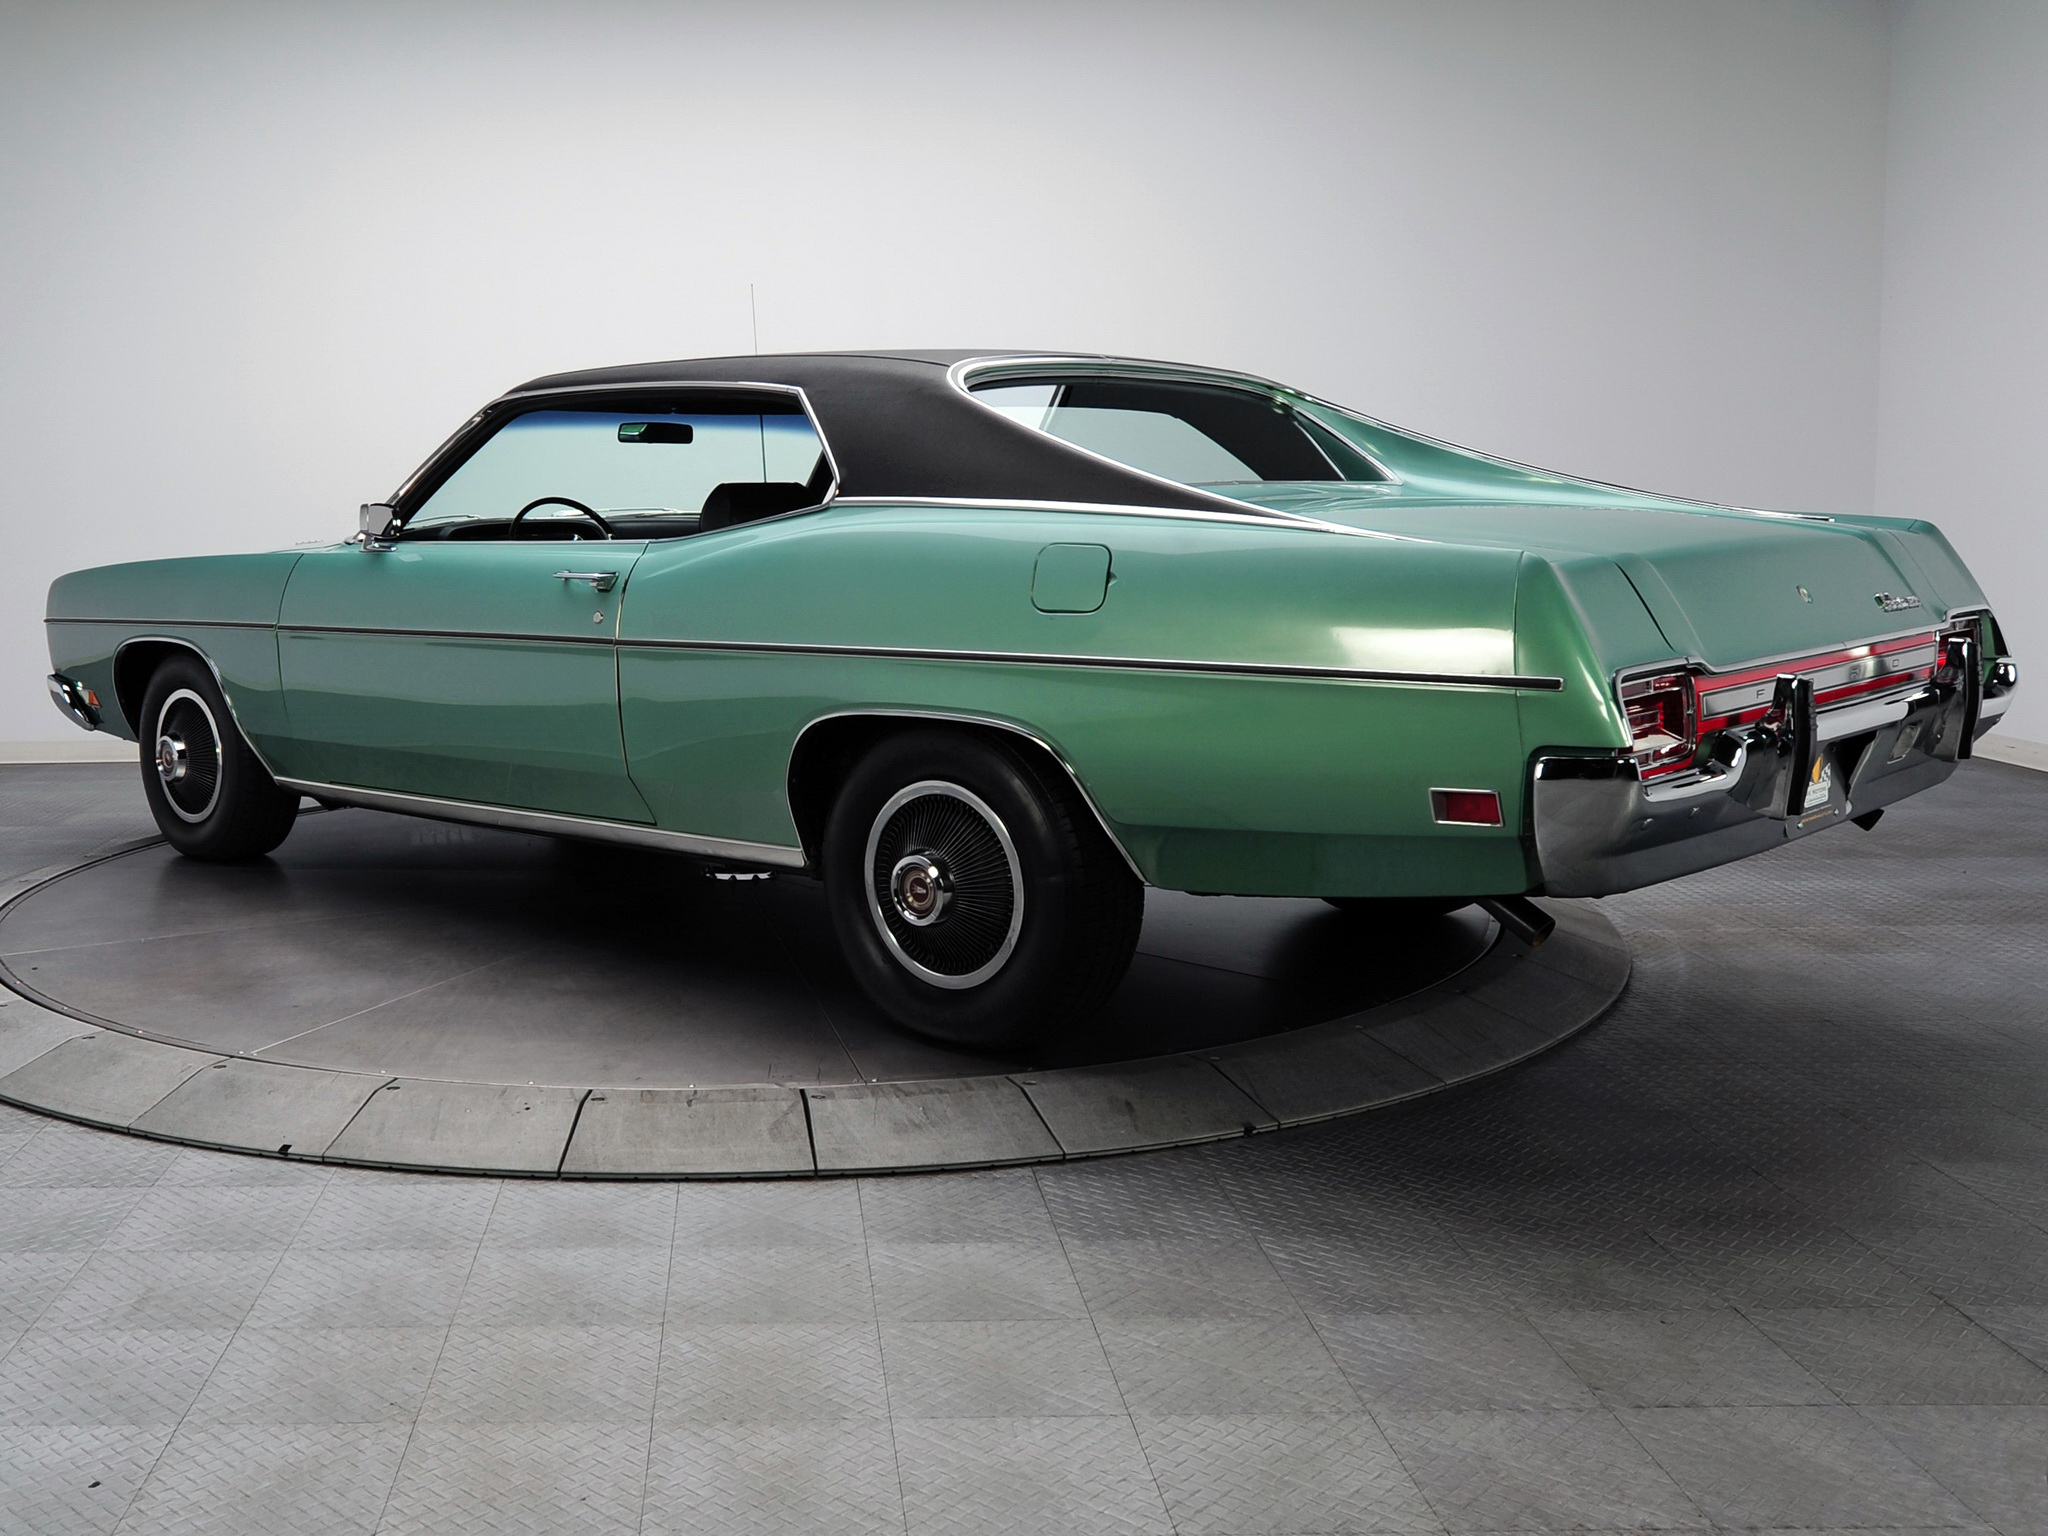 1970 ford galaxie 500 sportsroof classic muscle f wallpaper 2048x1536 142503 wallpaperup